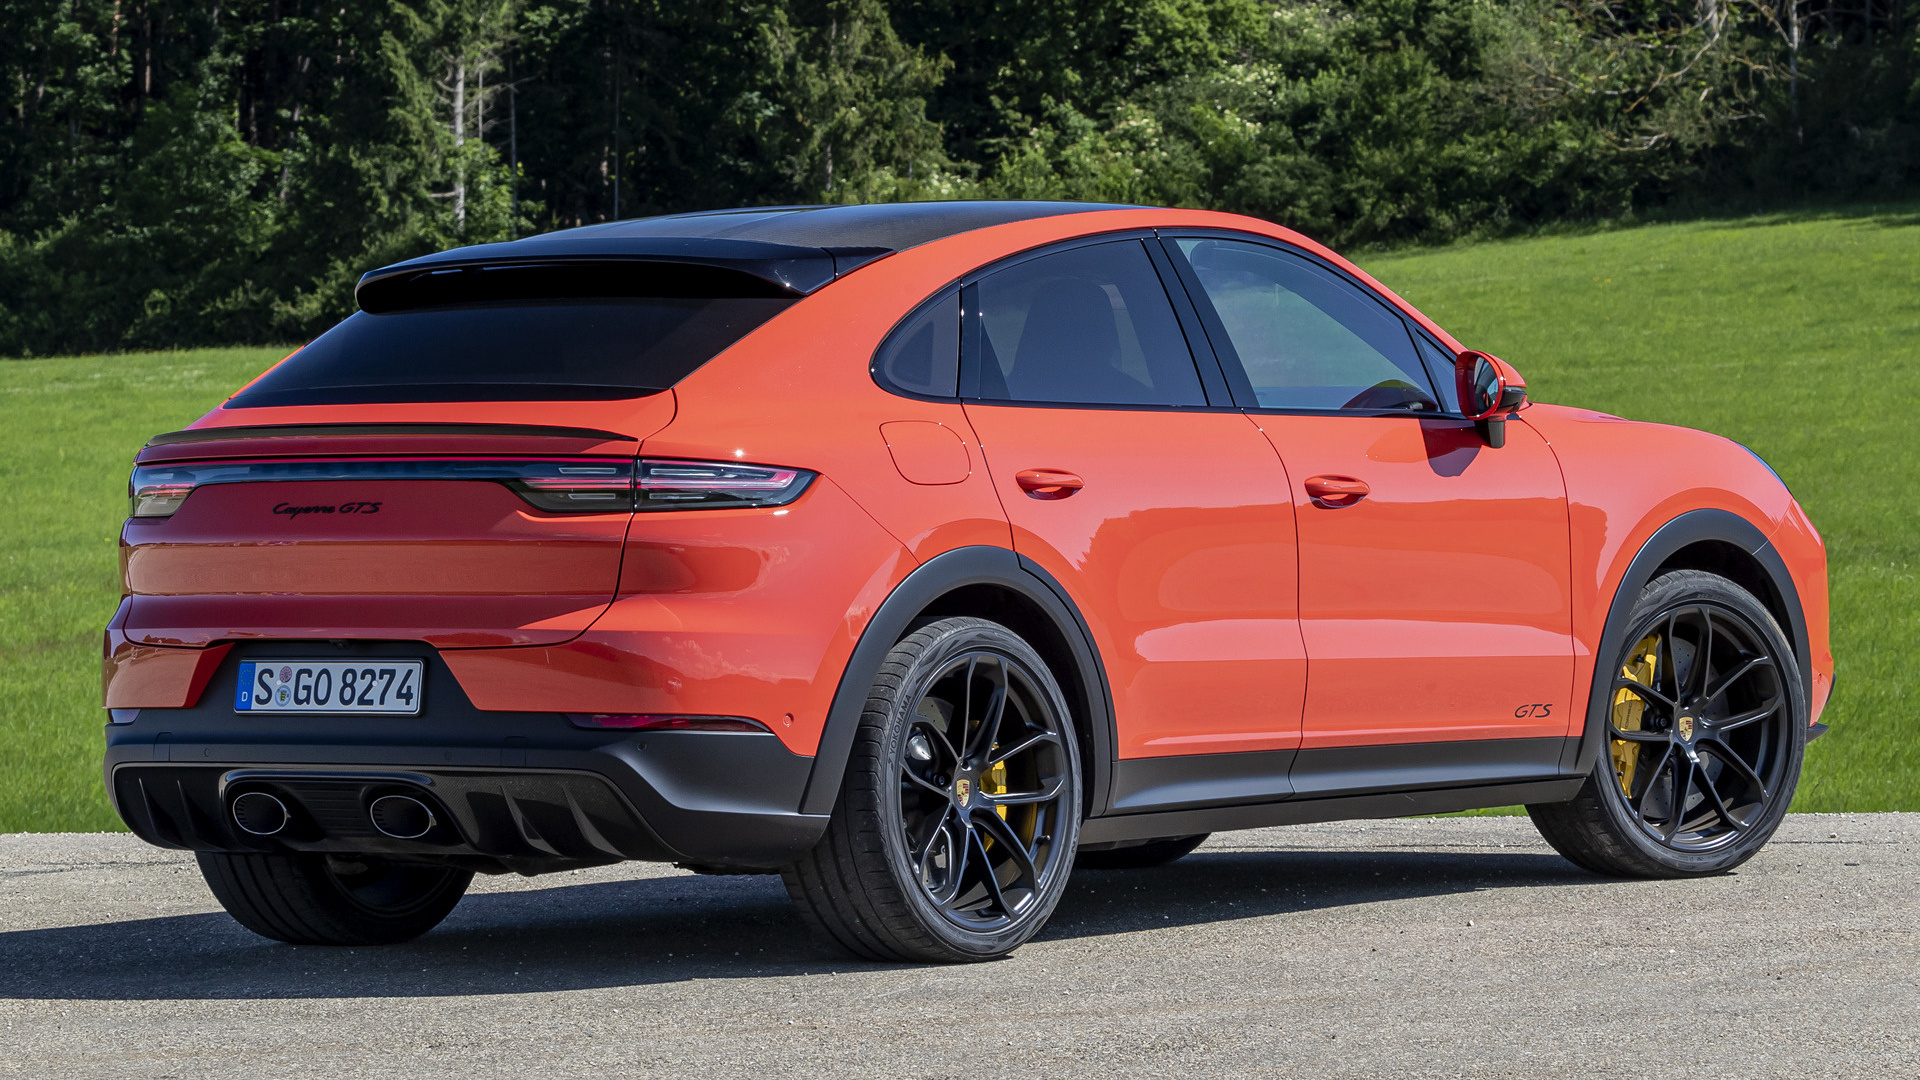 2020 Porsche Cayenne Gts Coupe Wallpapers And Hd Images Car Pixel